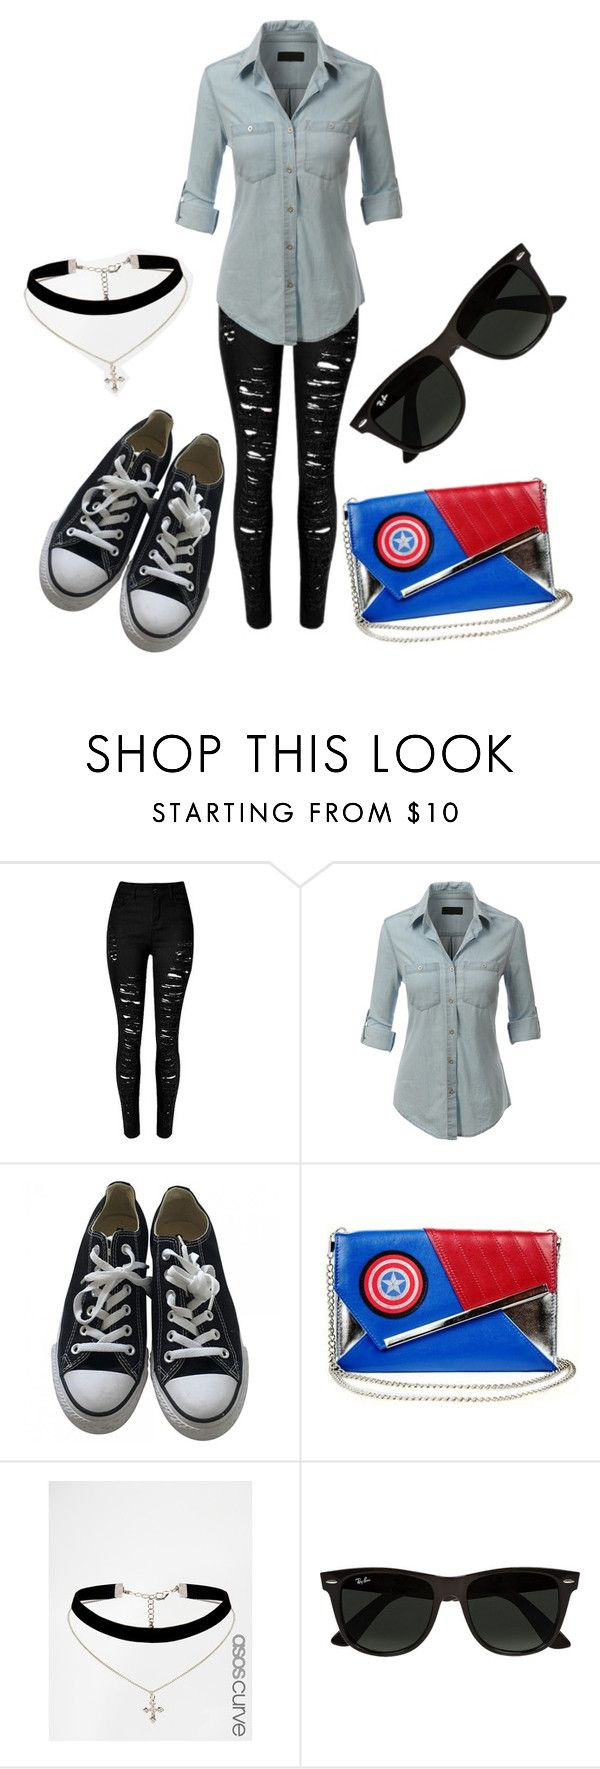 """Normal day"" by jj1197 ❤ liked on Polyvore featuring LE3NO, Converse, Marvel Comics, ASOS Curve and Ray-Ban"